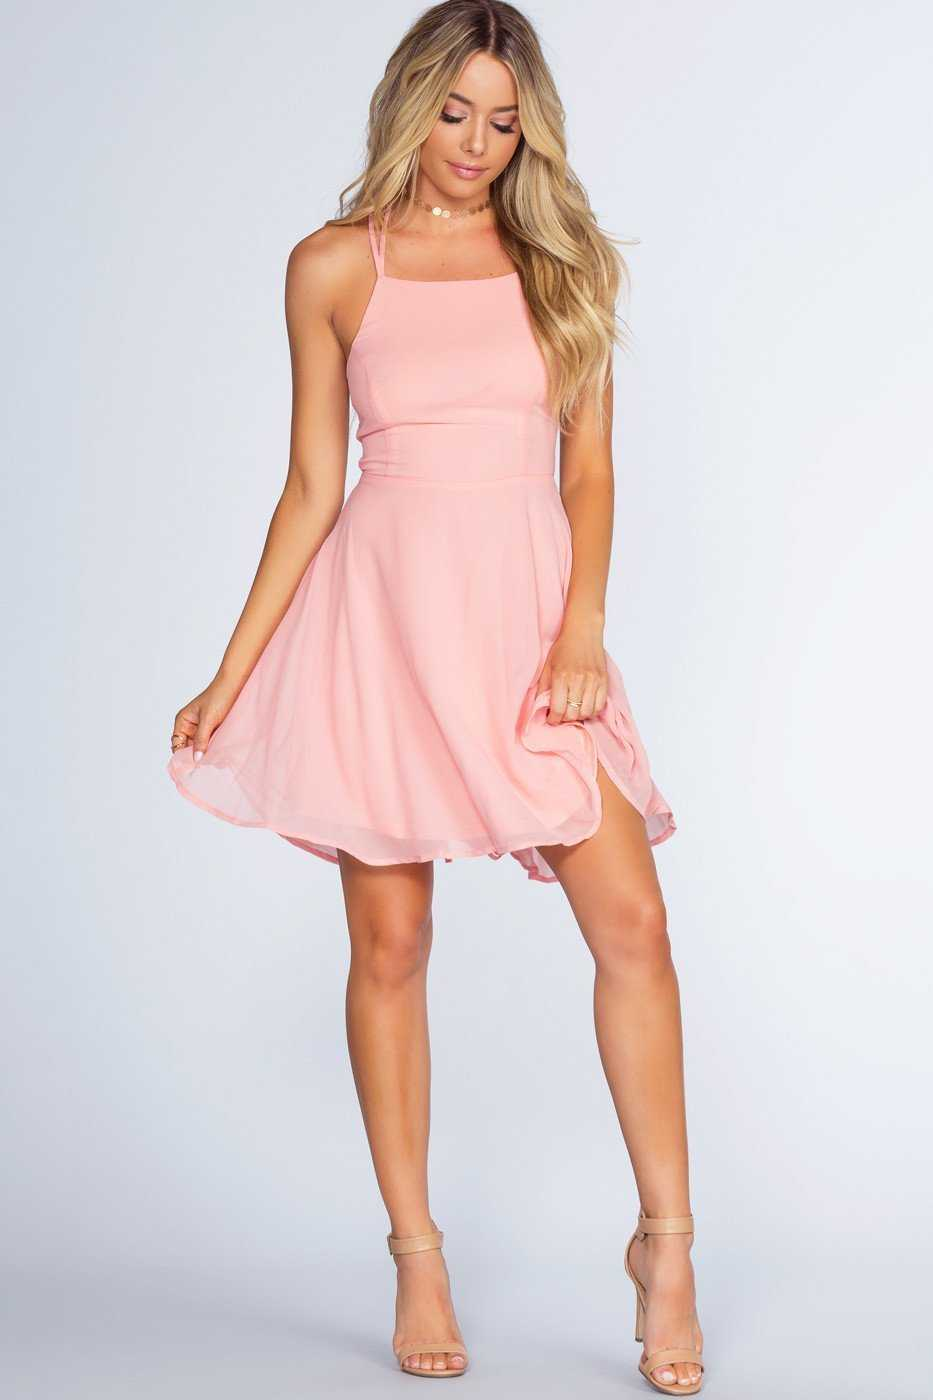 Dresses - Roxy Dress - Blush